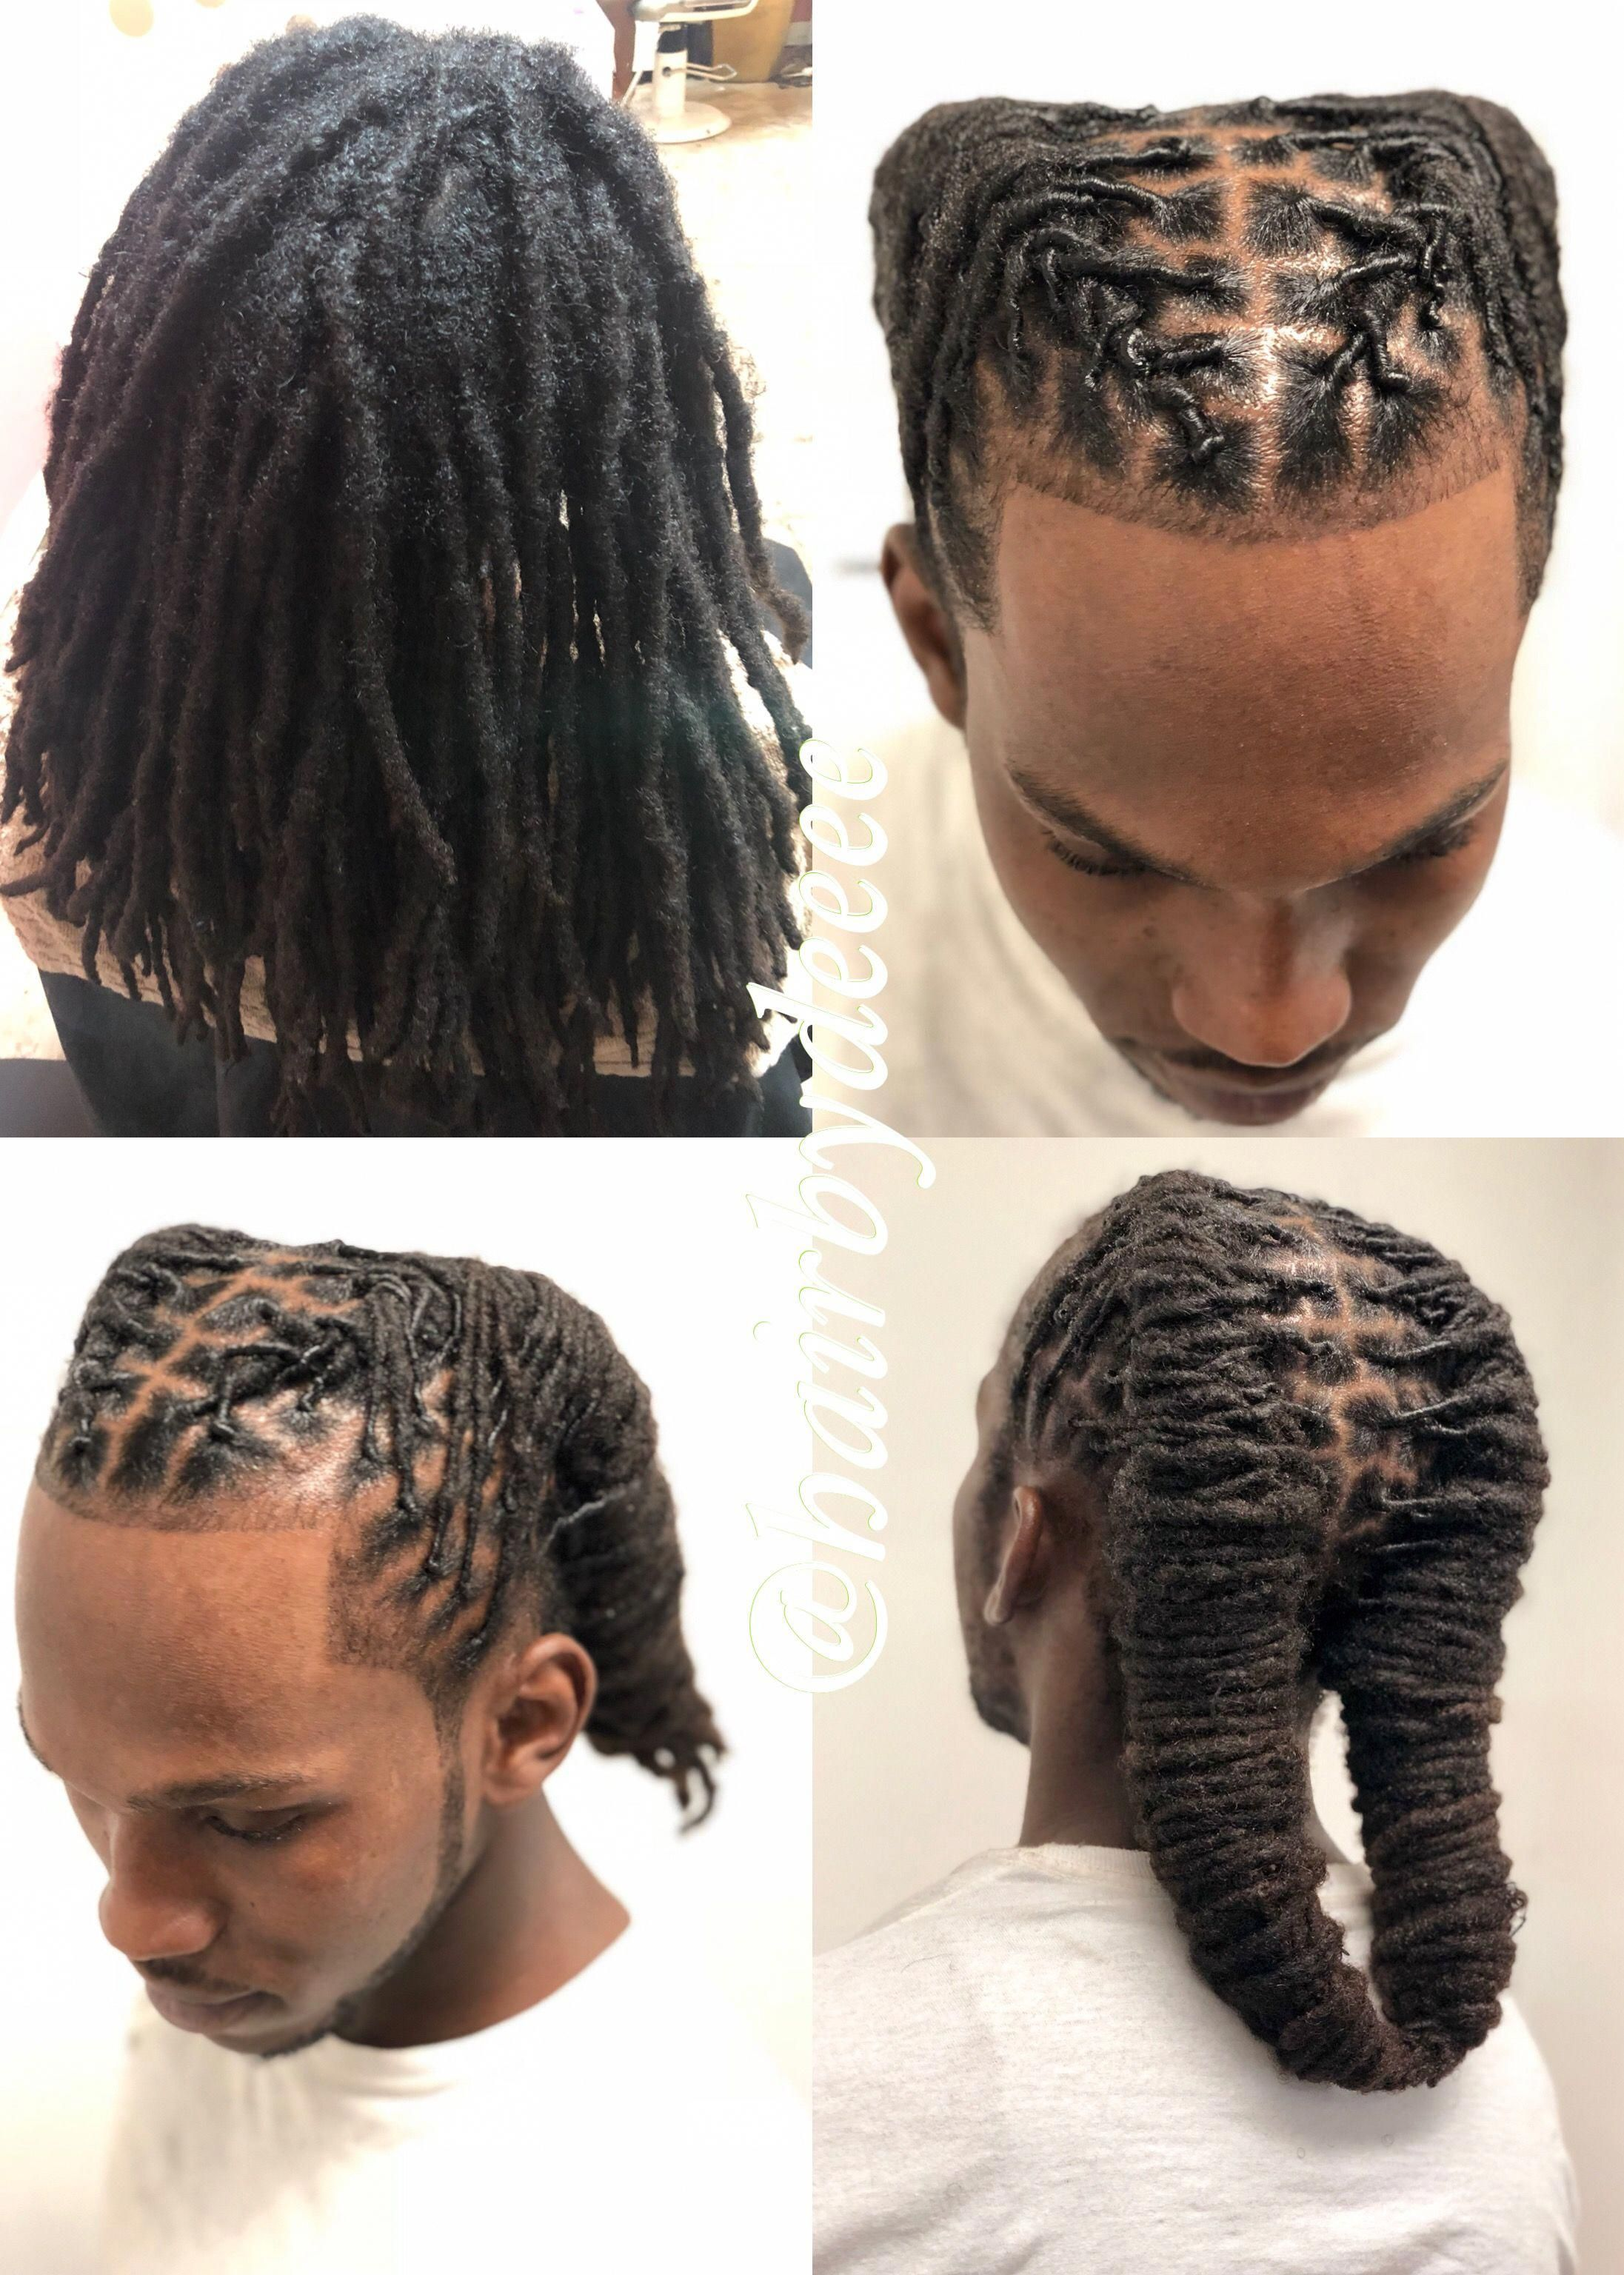 dreads styles for men #blackhairstyles | black hairstyles in